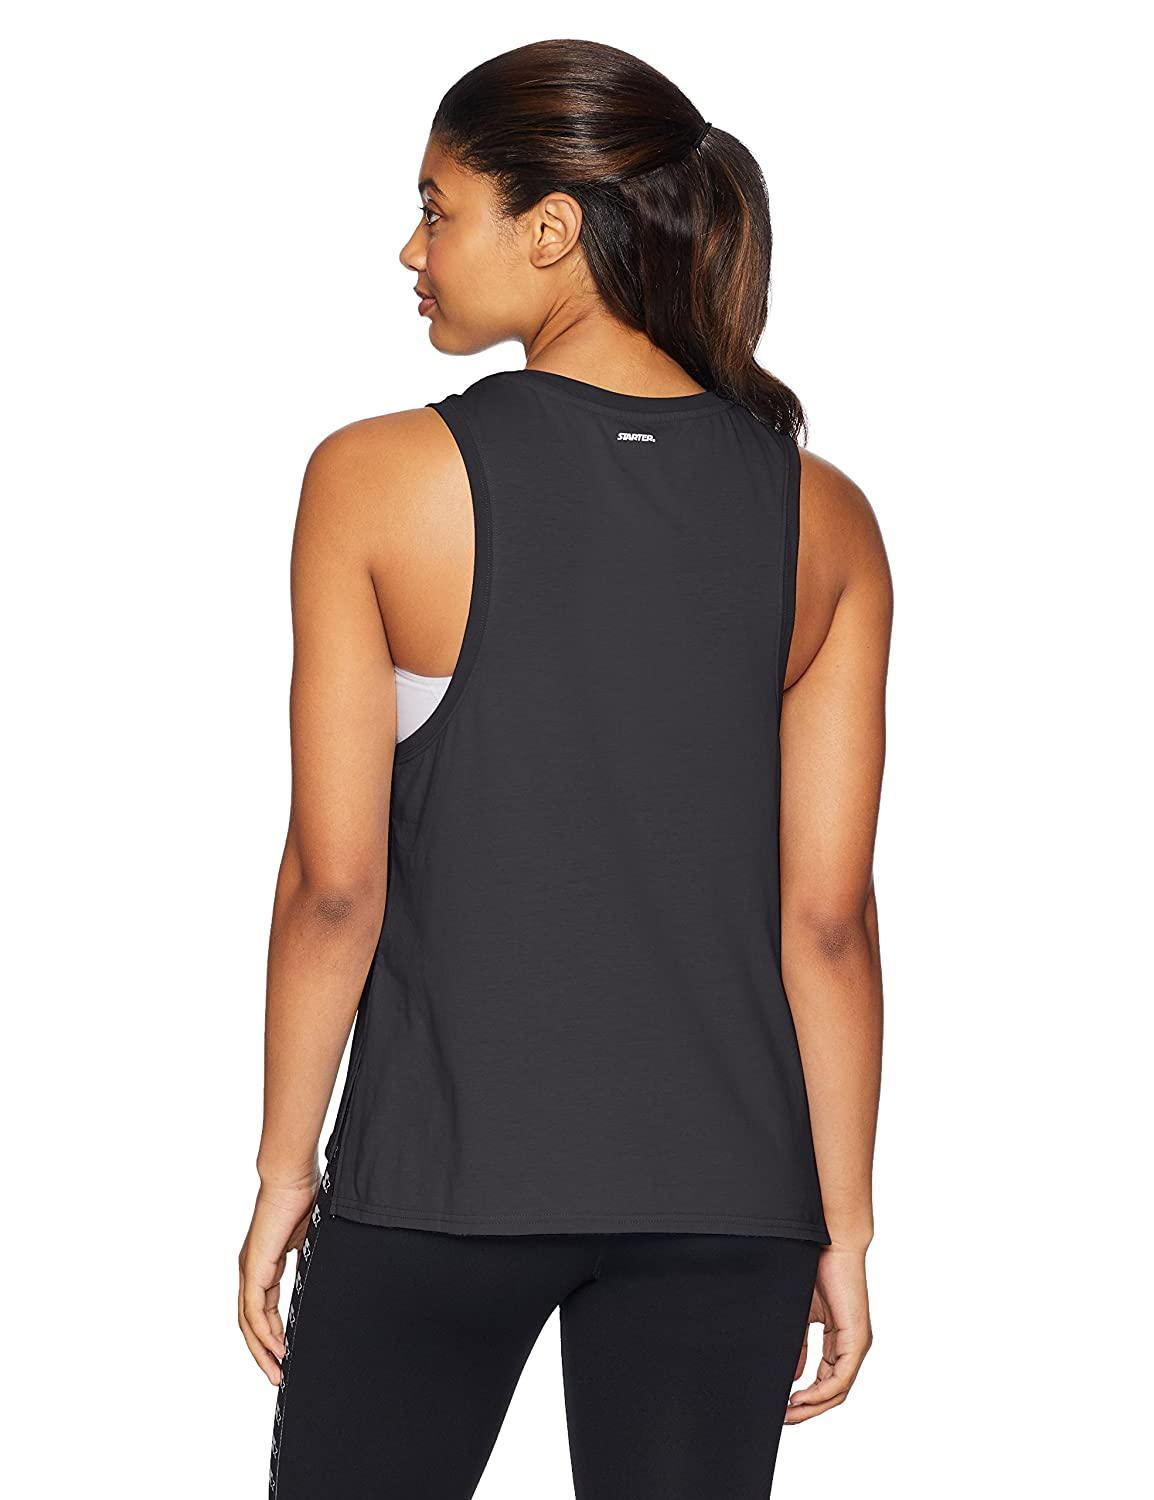 Starter Womens Tech Muscle Tank Top Exclusive